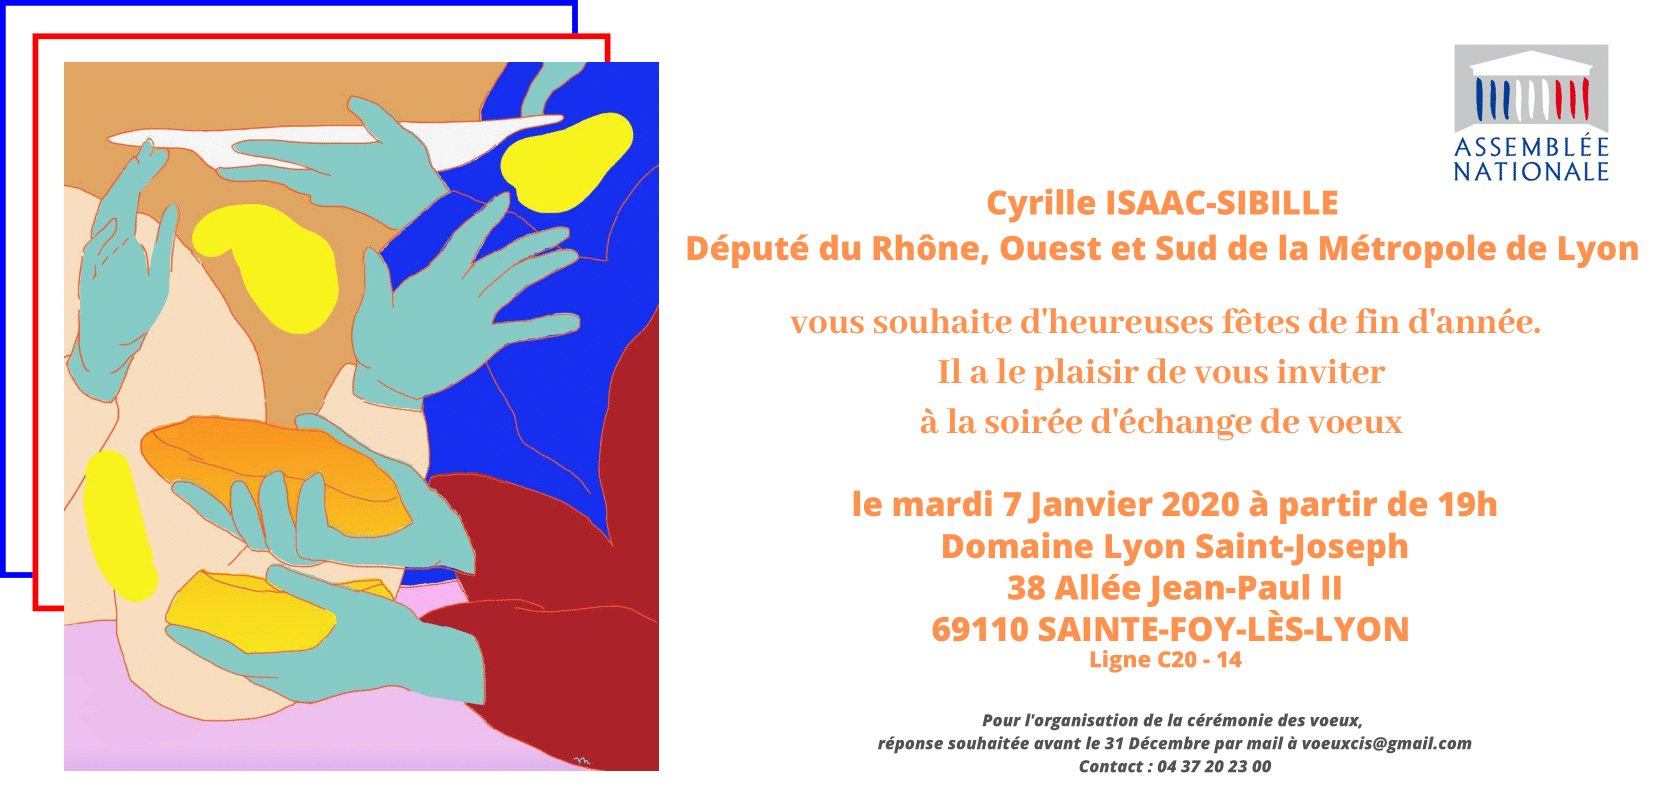 Voeux de Cyrille Isaac-Sibille